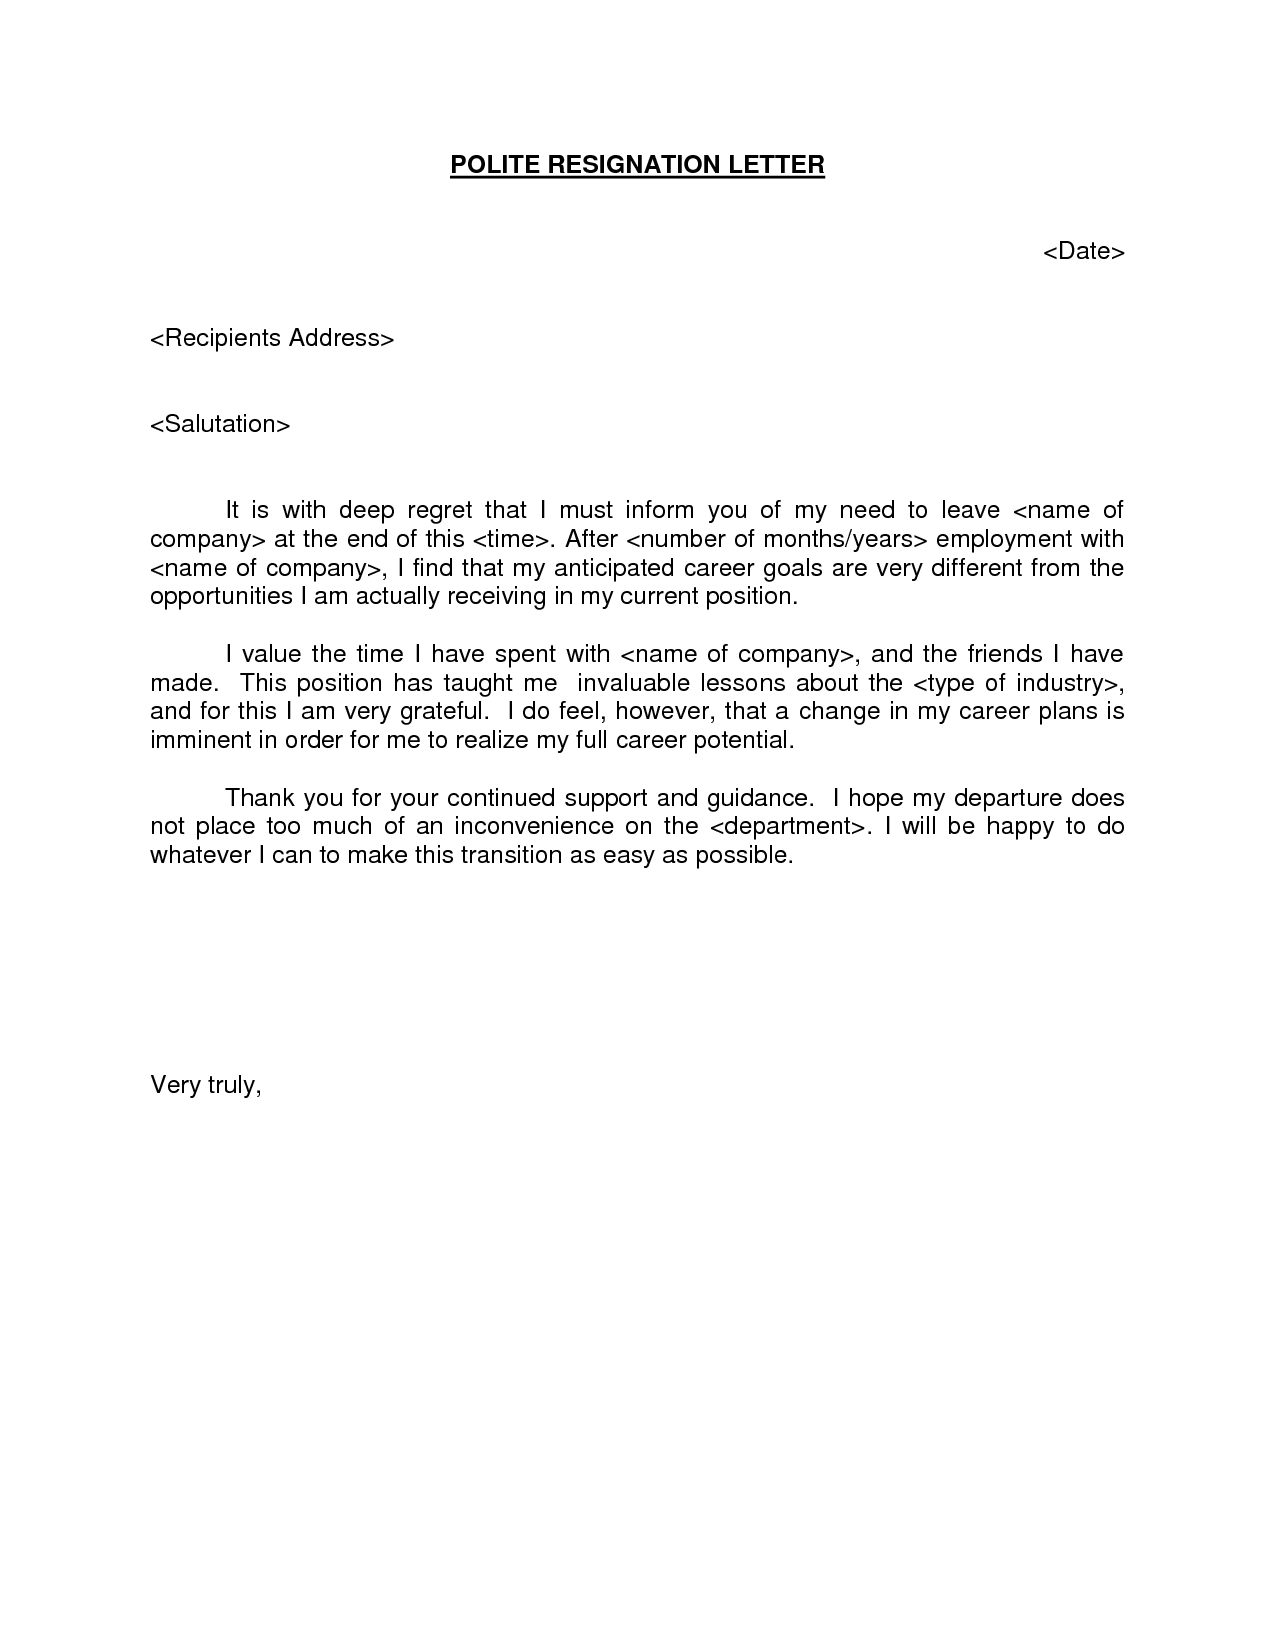 POLITE RESIGNATION LETTER BestdealformoneyWriting A Letter Of Resignation  Email Letter Sample  Letter Of Resignation Email